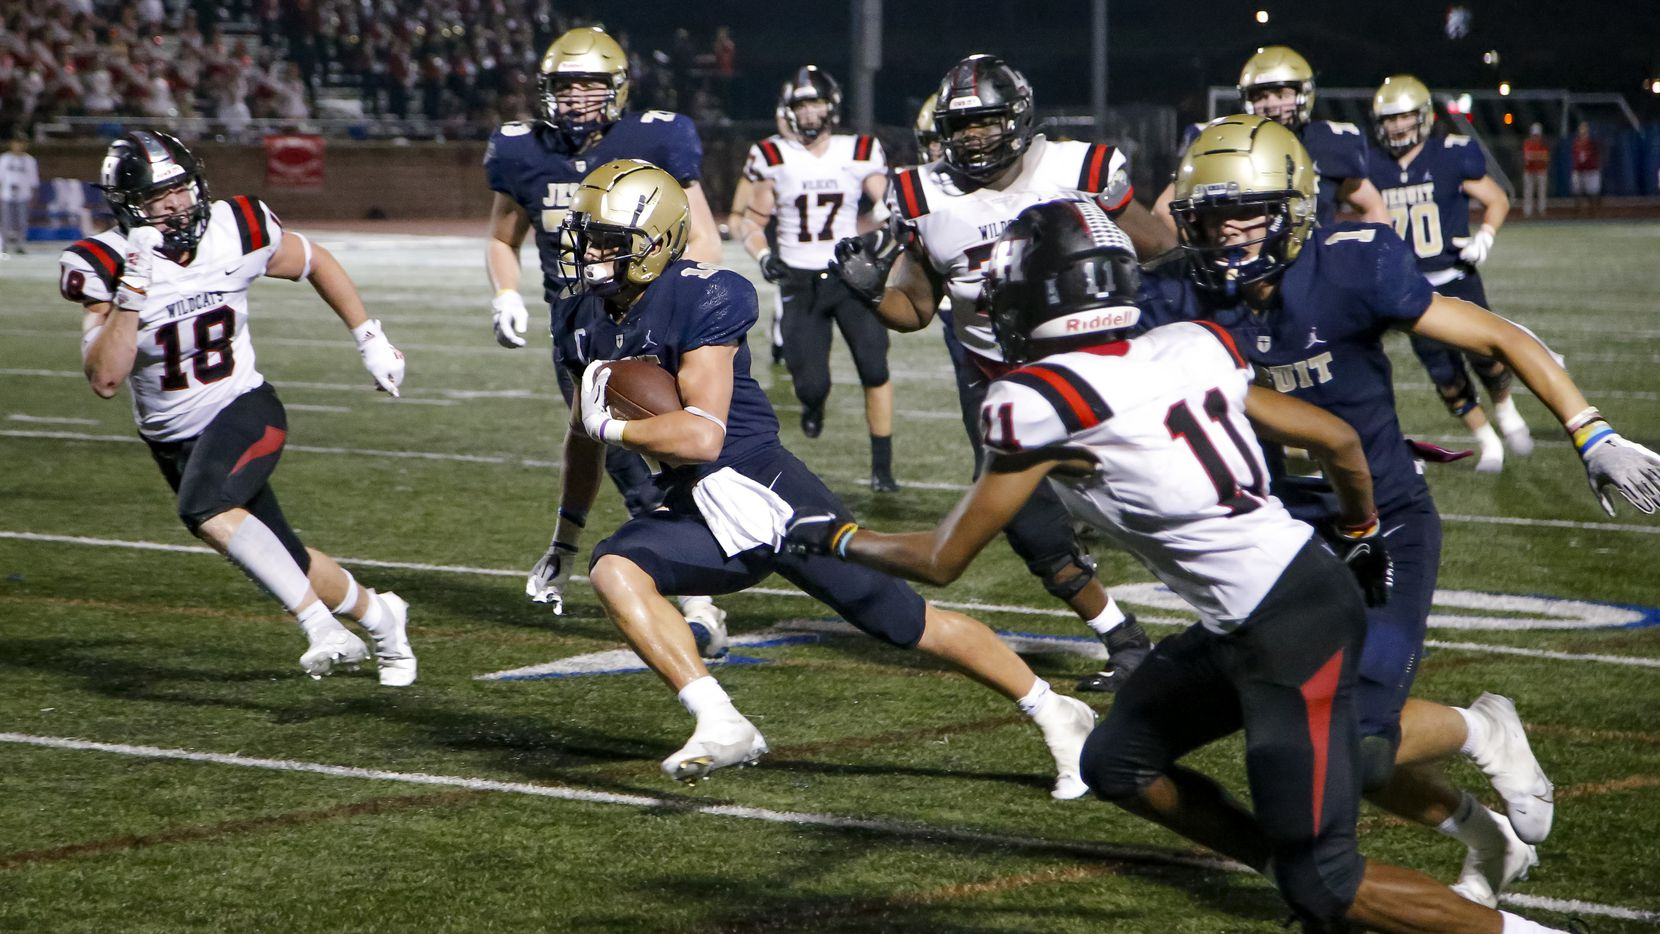 Jesuit running back Robert Fitzgerald (center) gets past the Lake Highlands defense to score the game-winning touchdown with 1:17 remaining as Jesuit beat Lake Highlands 48-45 on Friday. (Brandon Wade/Special Contributor)